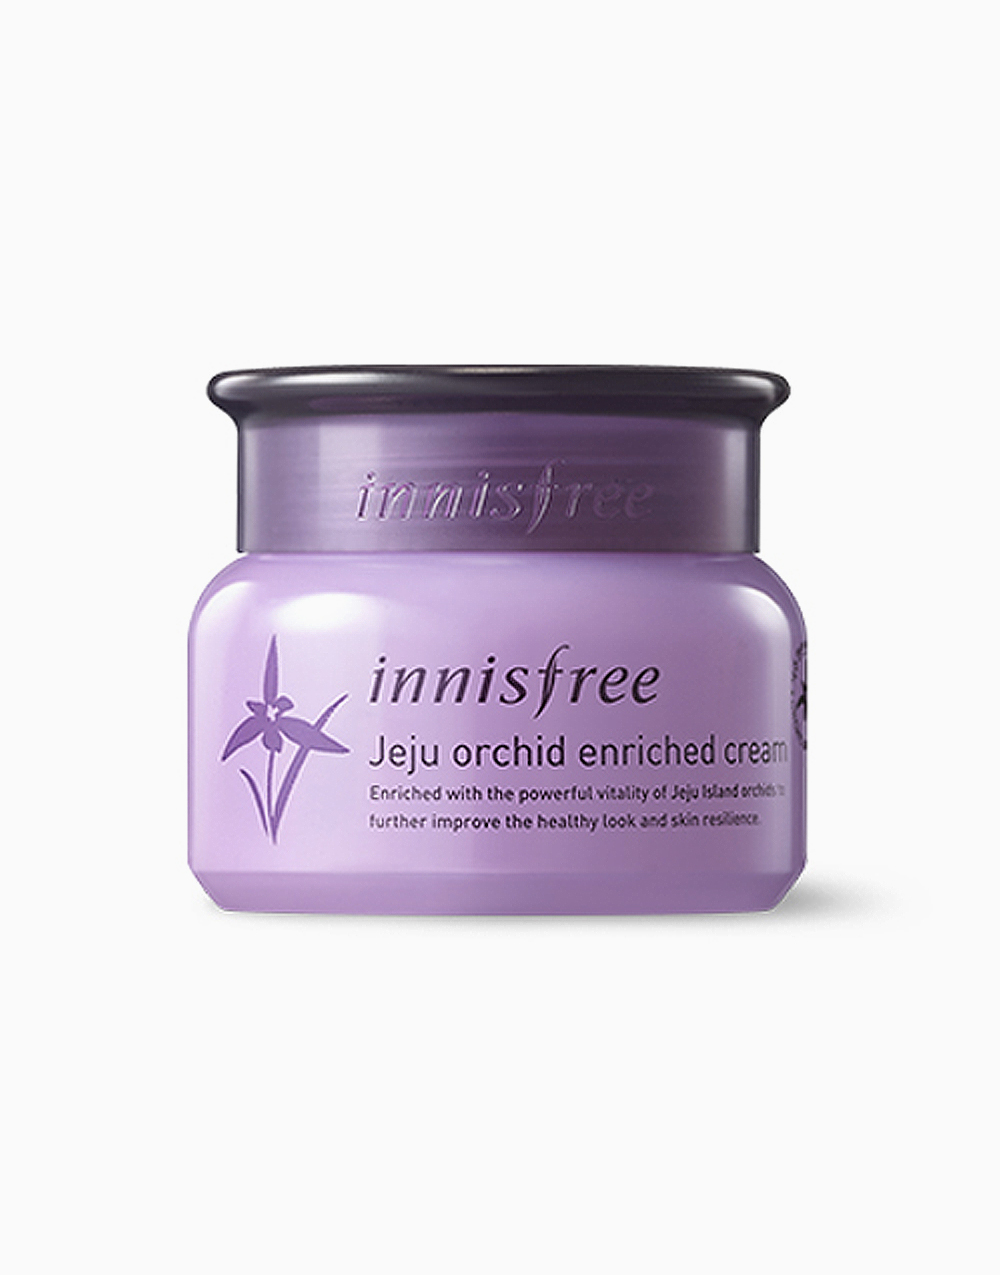 Jeju Orchid Enriched Cream by Innisfree